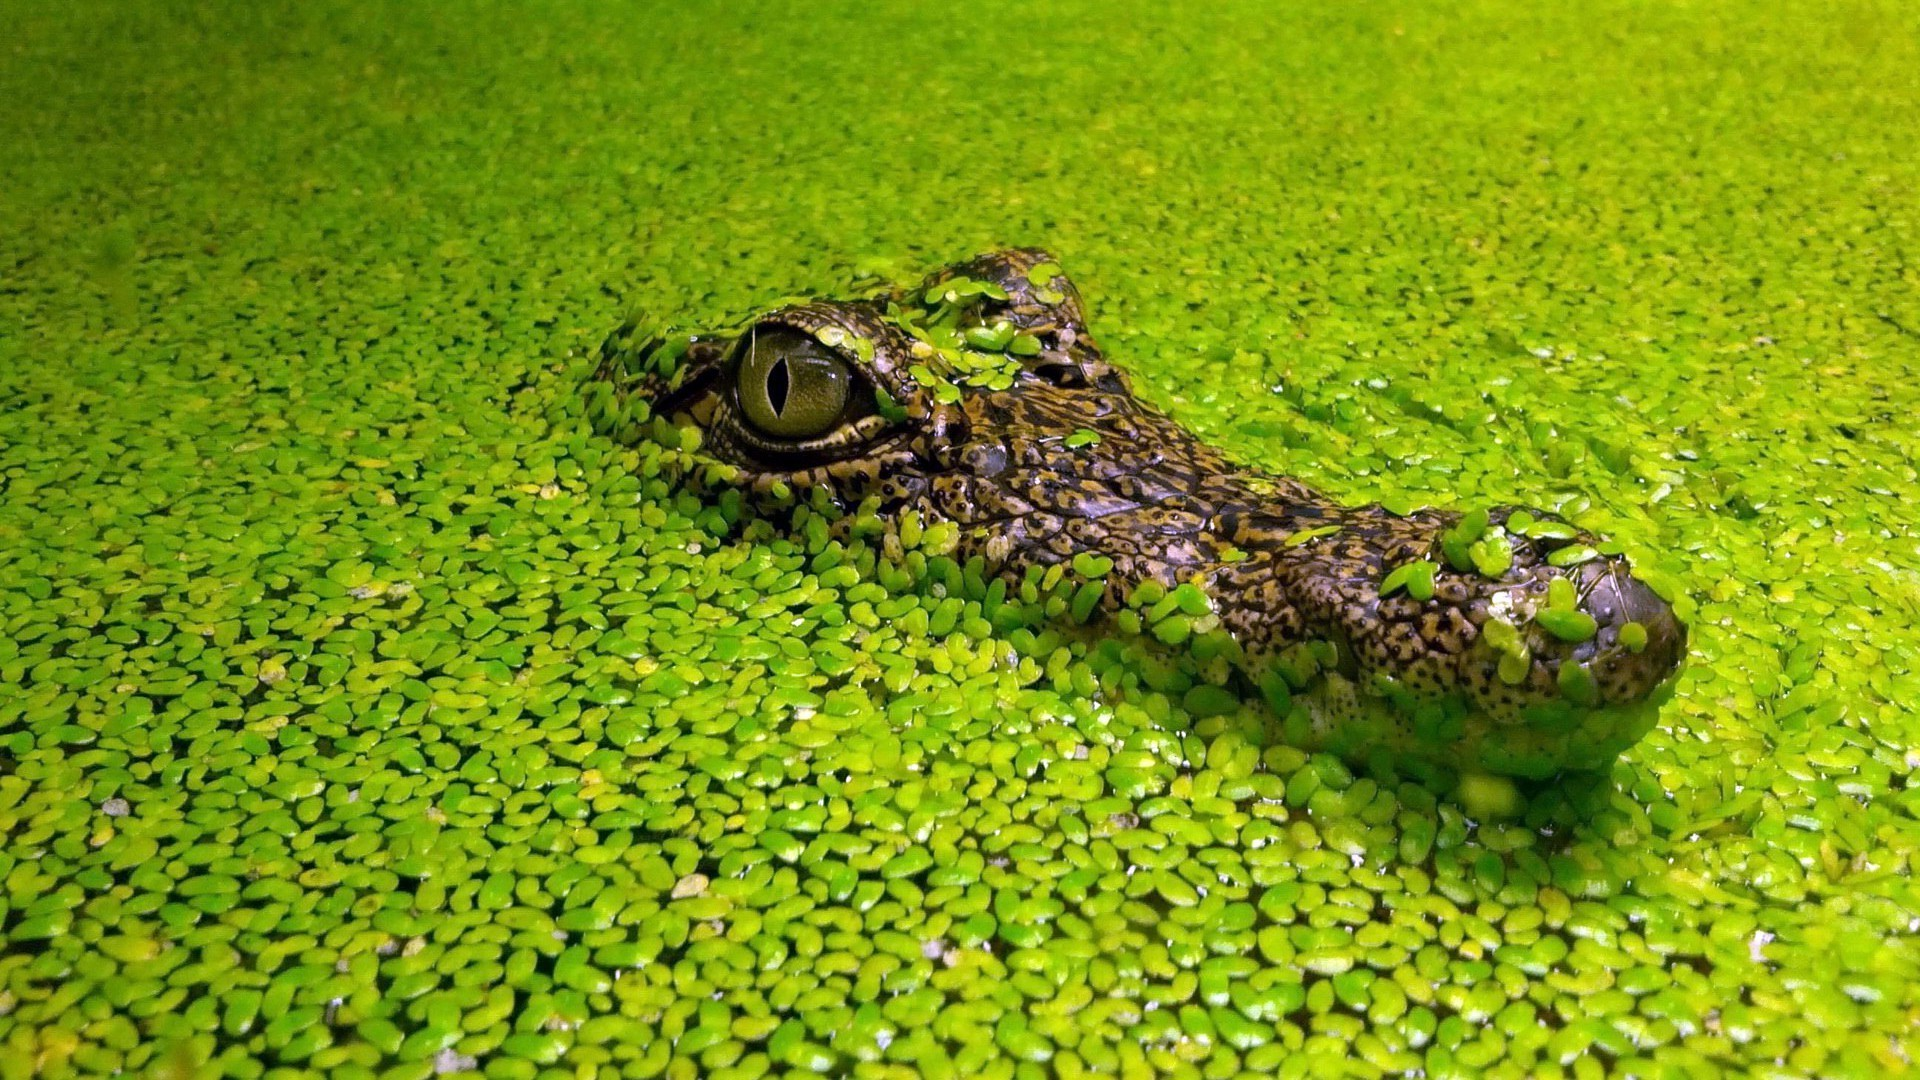 animals nature water flora close-up reptile color outdoors pool desktop garden alligator summer grass park tropical lake wild environment beautiful